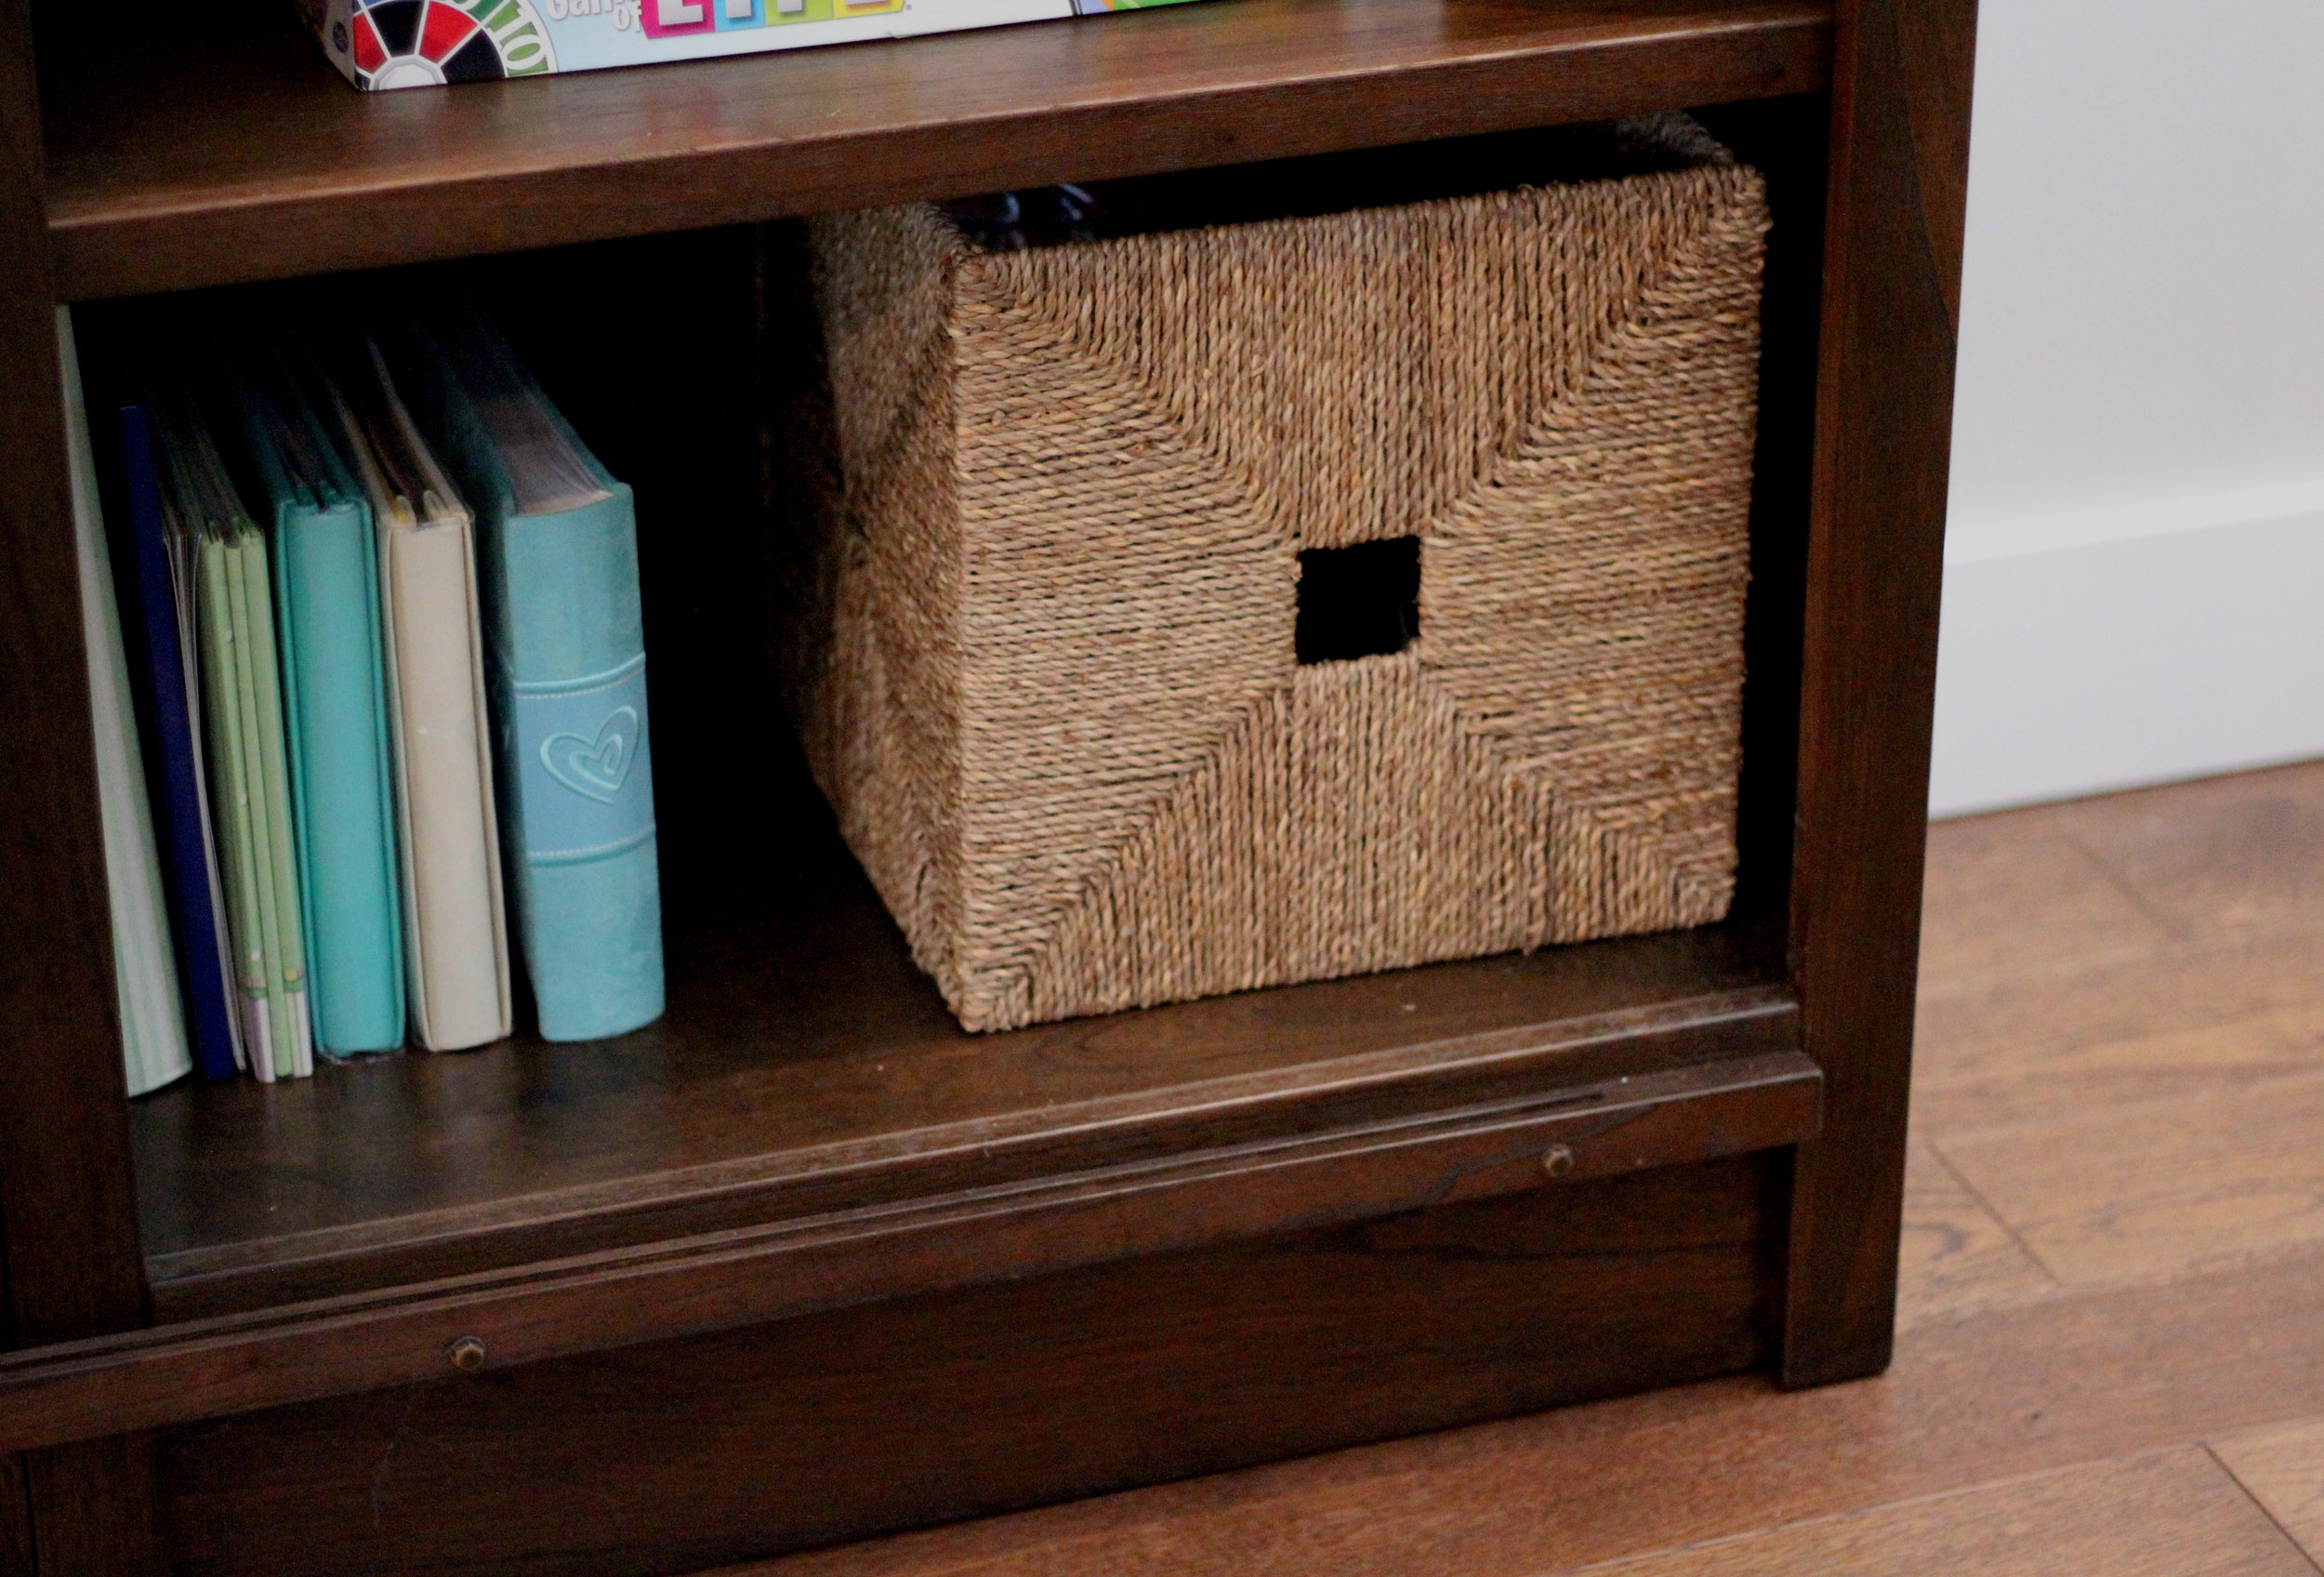 Evalia Design Blog_Shelf Detail_8.JPG